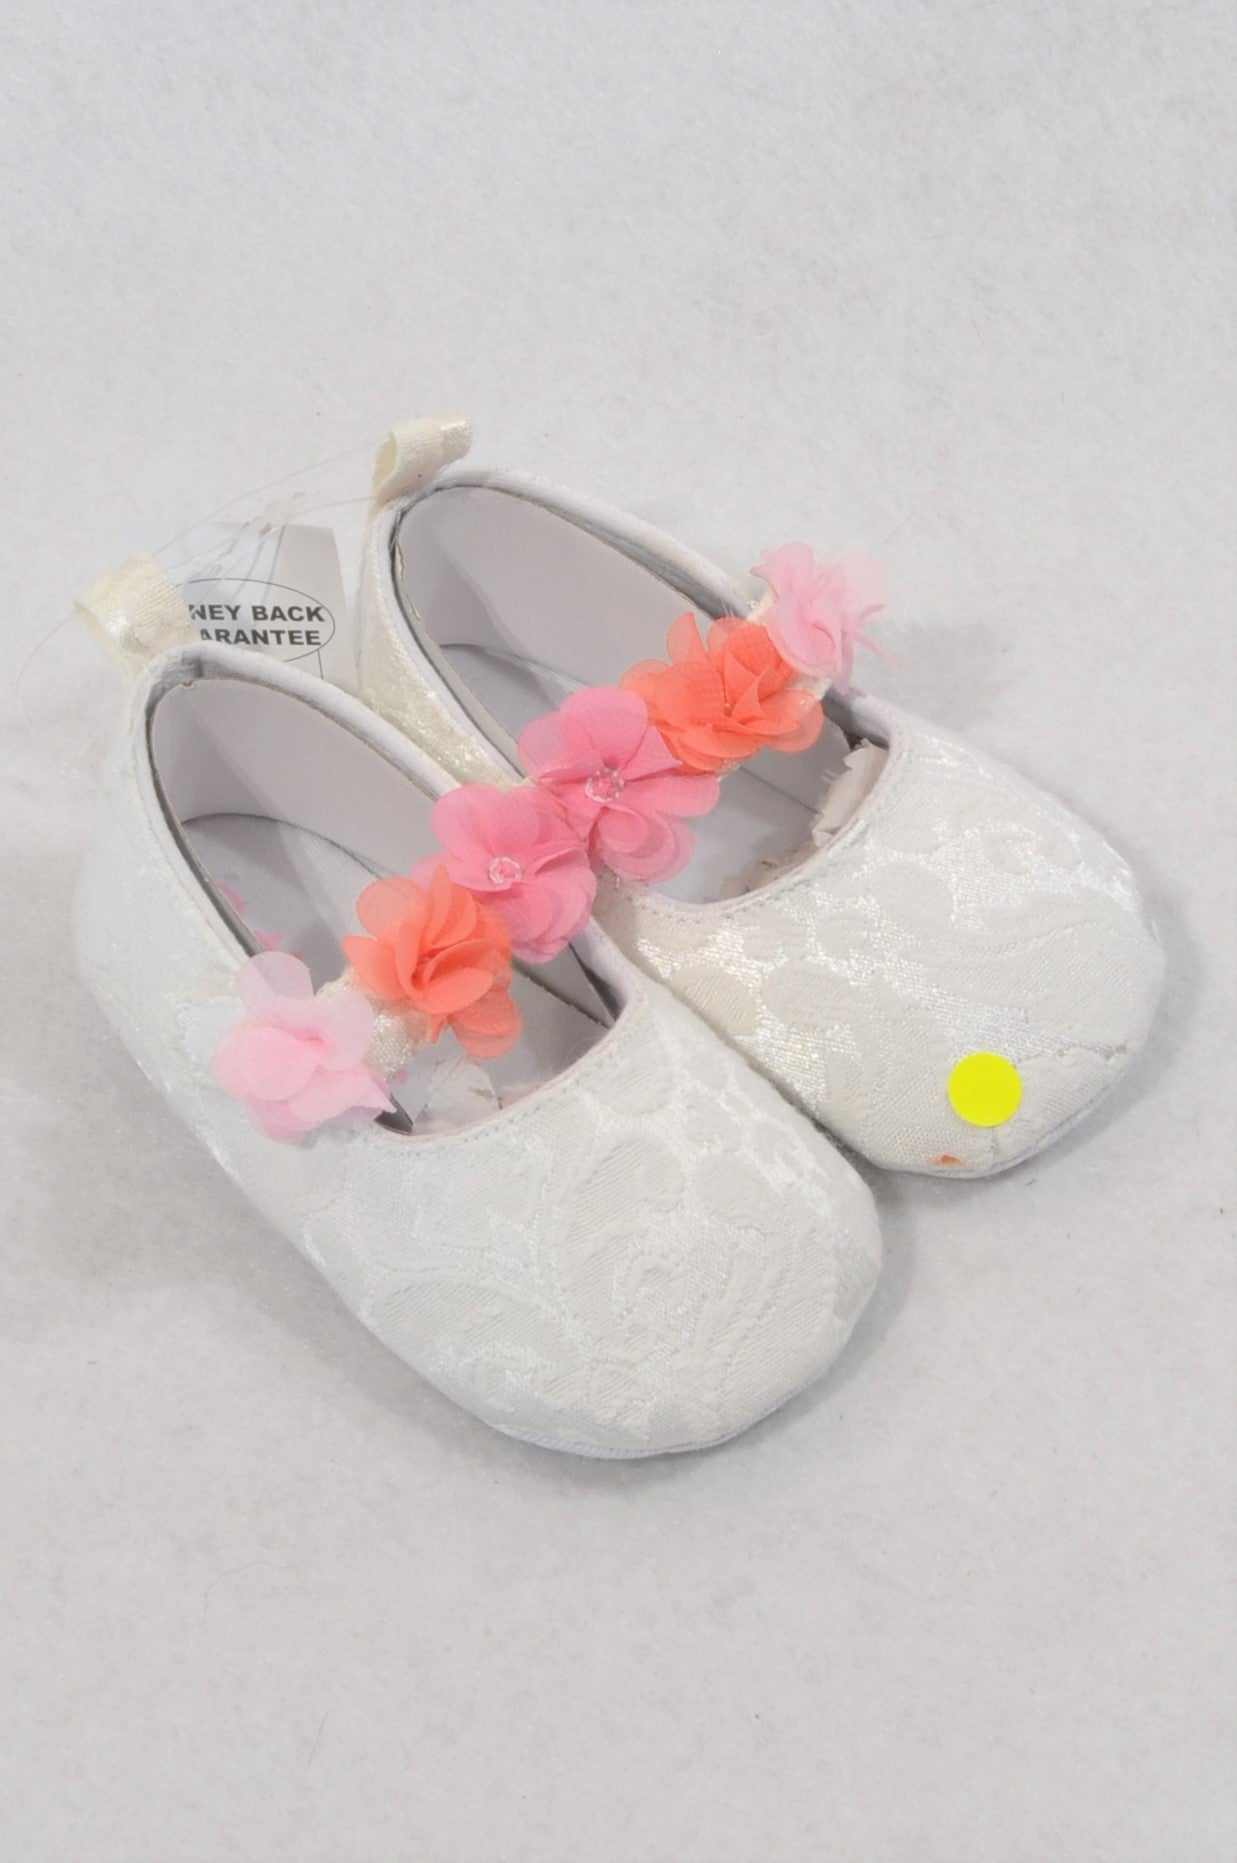 New Pep Size 3 Lace Overlay Pink Flower Shoes Girls 9-12 months